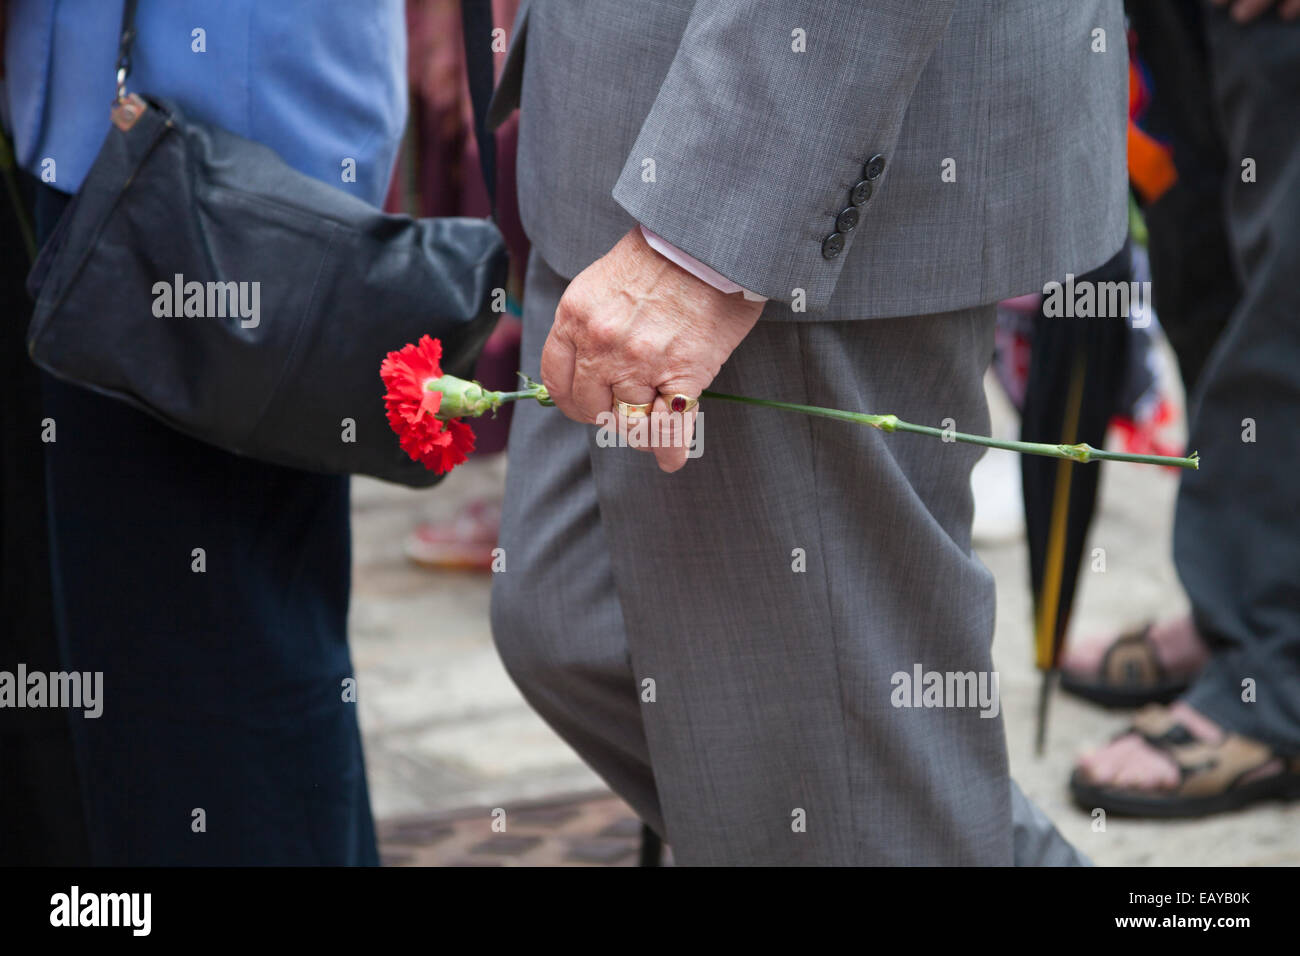 A man carries a single red carnation - Stock Image